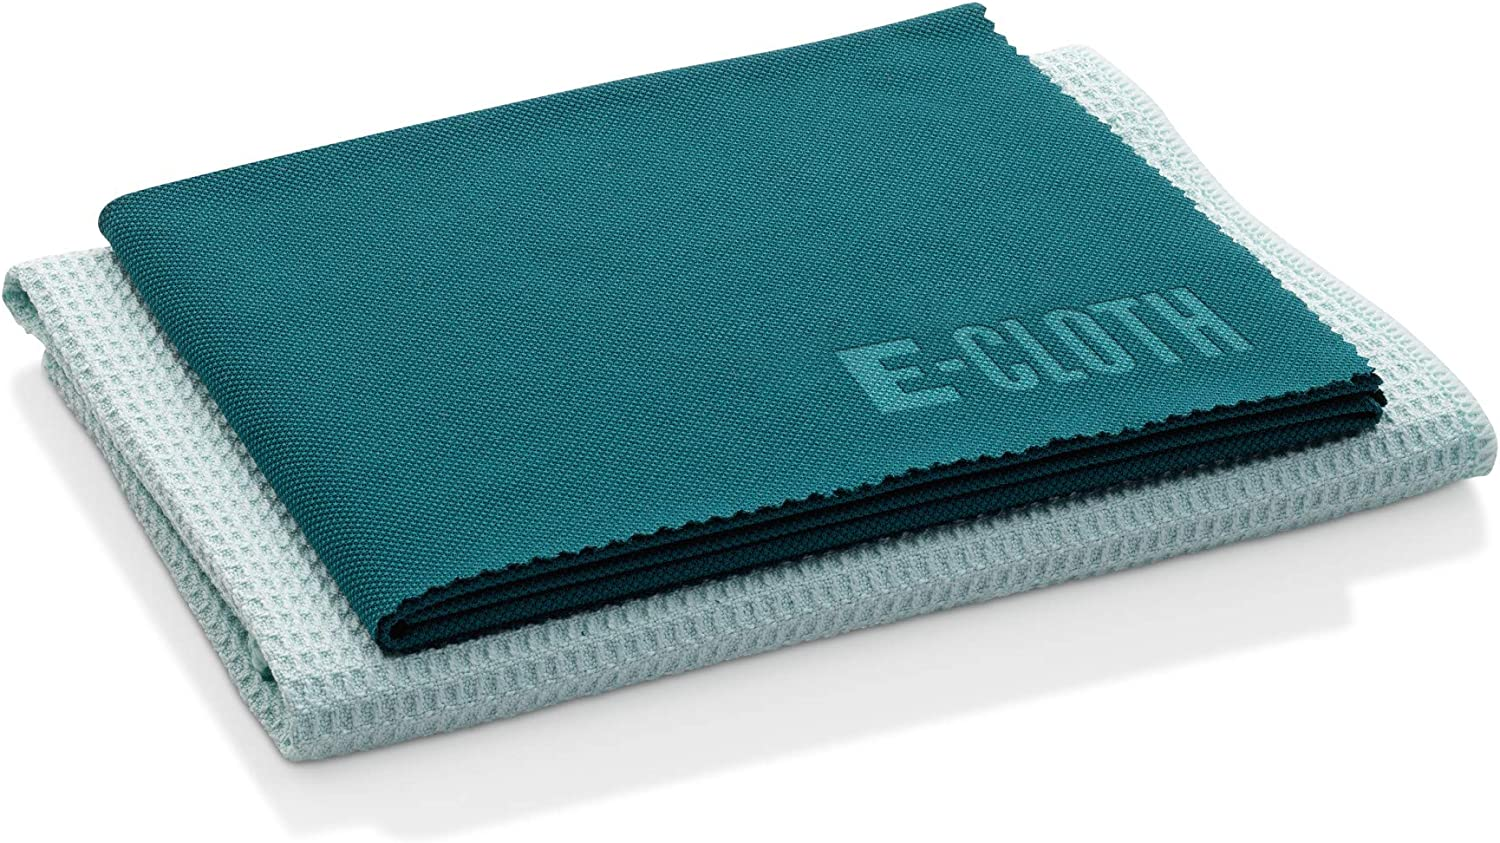 E-Cloth Window Cleaning Set, Reusable Microfiber Cleaning Cloths, 300 Wash Guarantee, Green, 2 Cloth Set